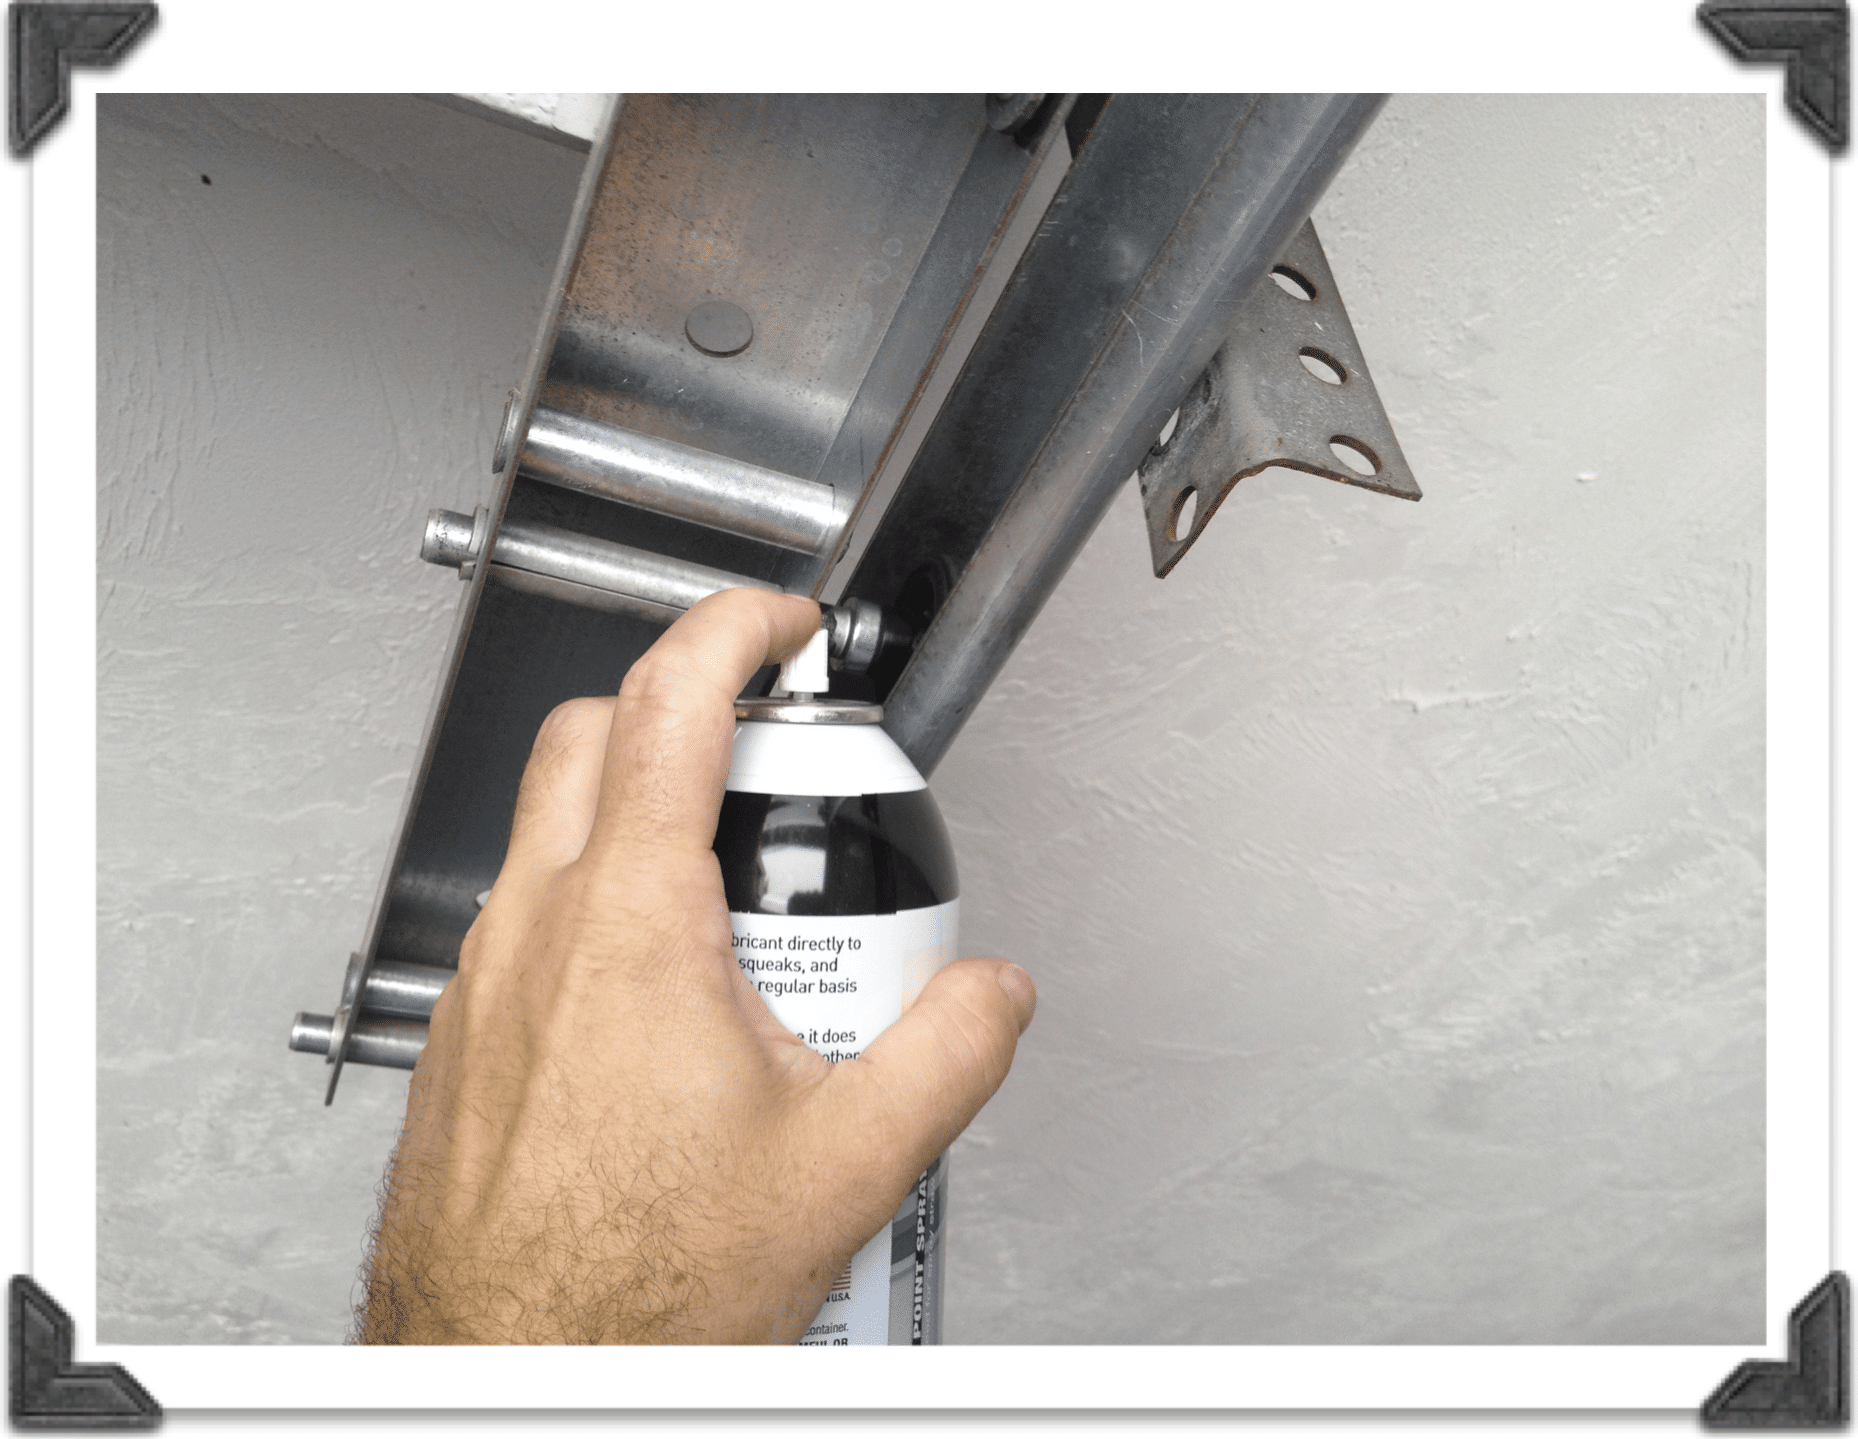 In This Blog Post I Discuss How To Perform Garage Door Maintenance